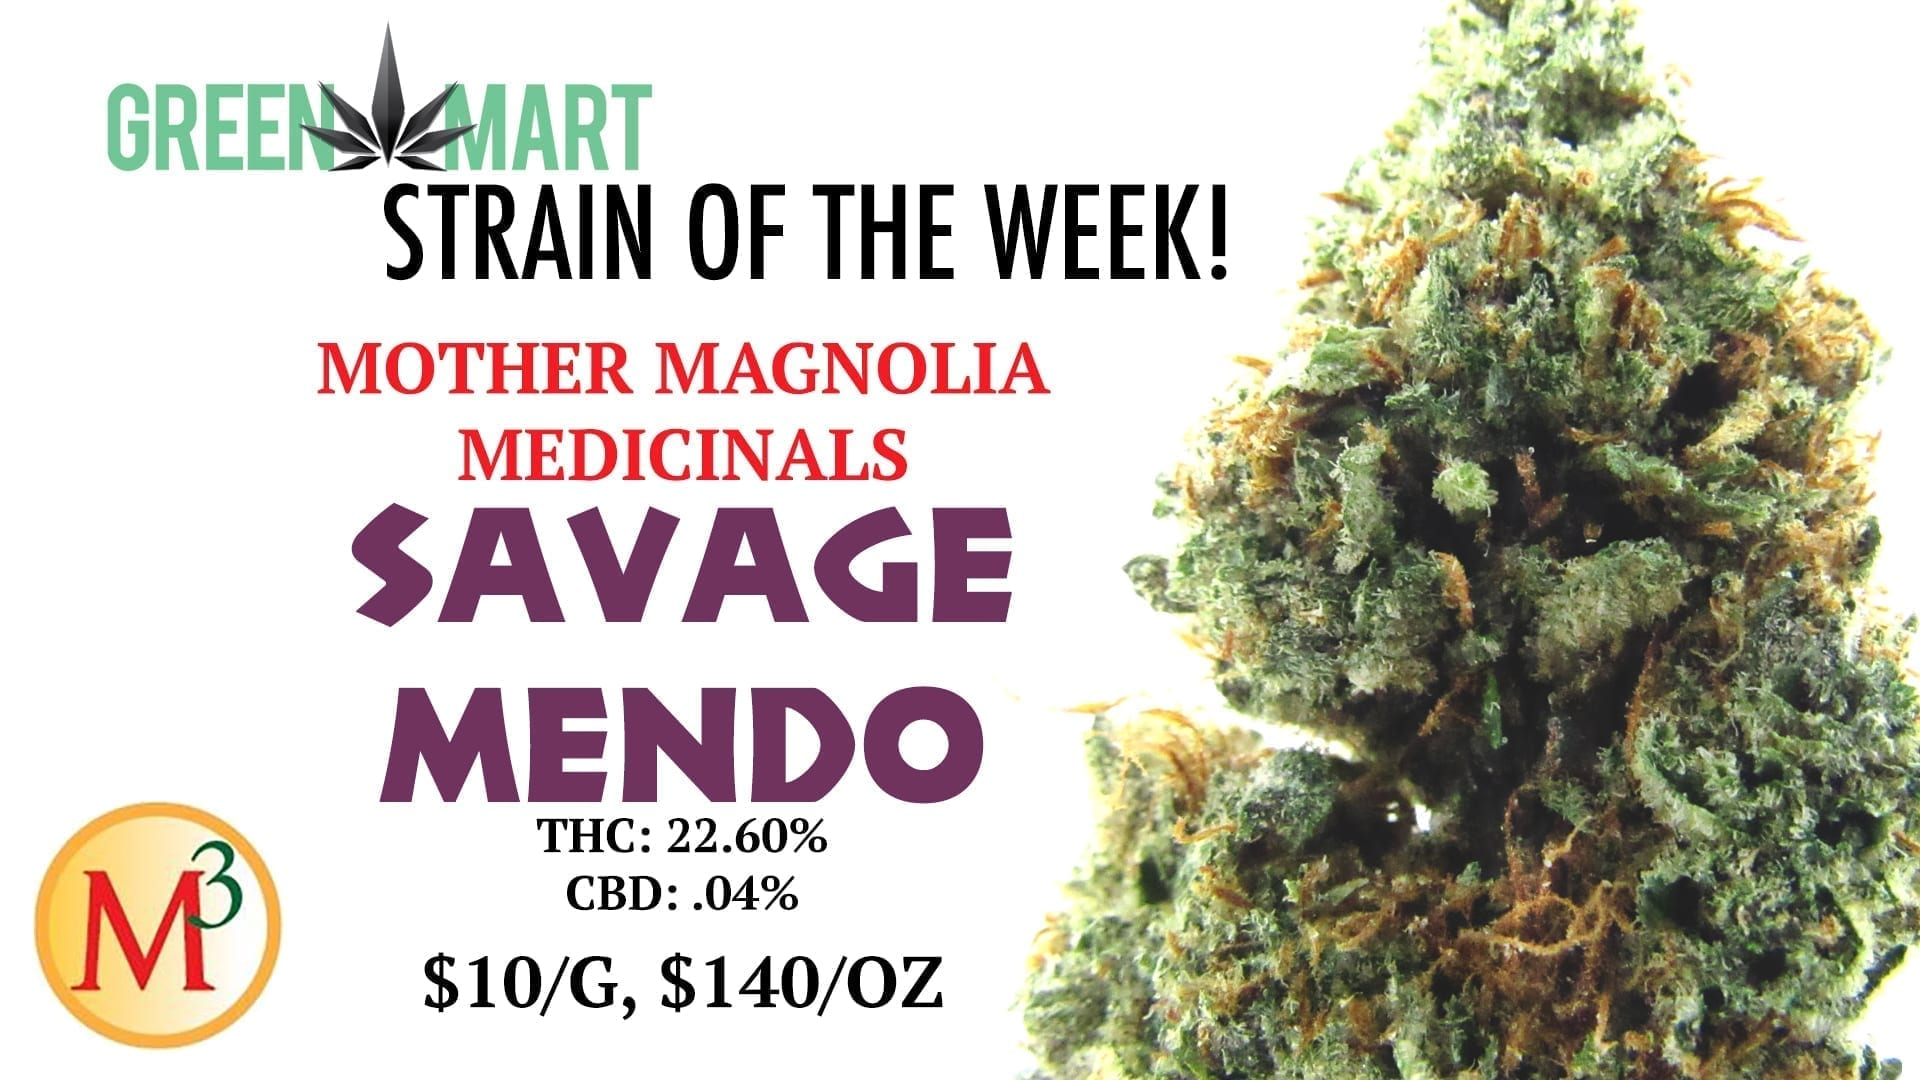 Savage Mendo Strain of the Week